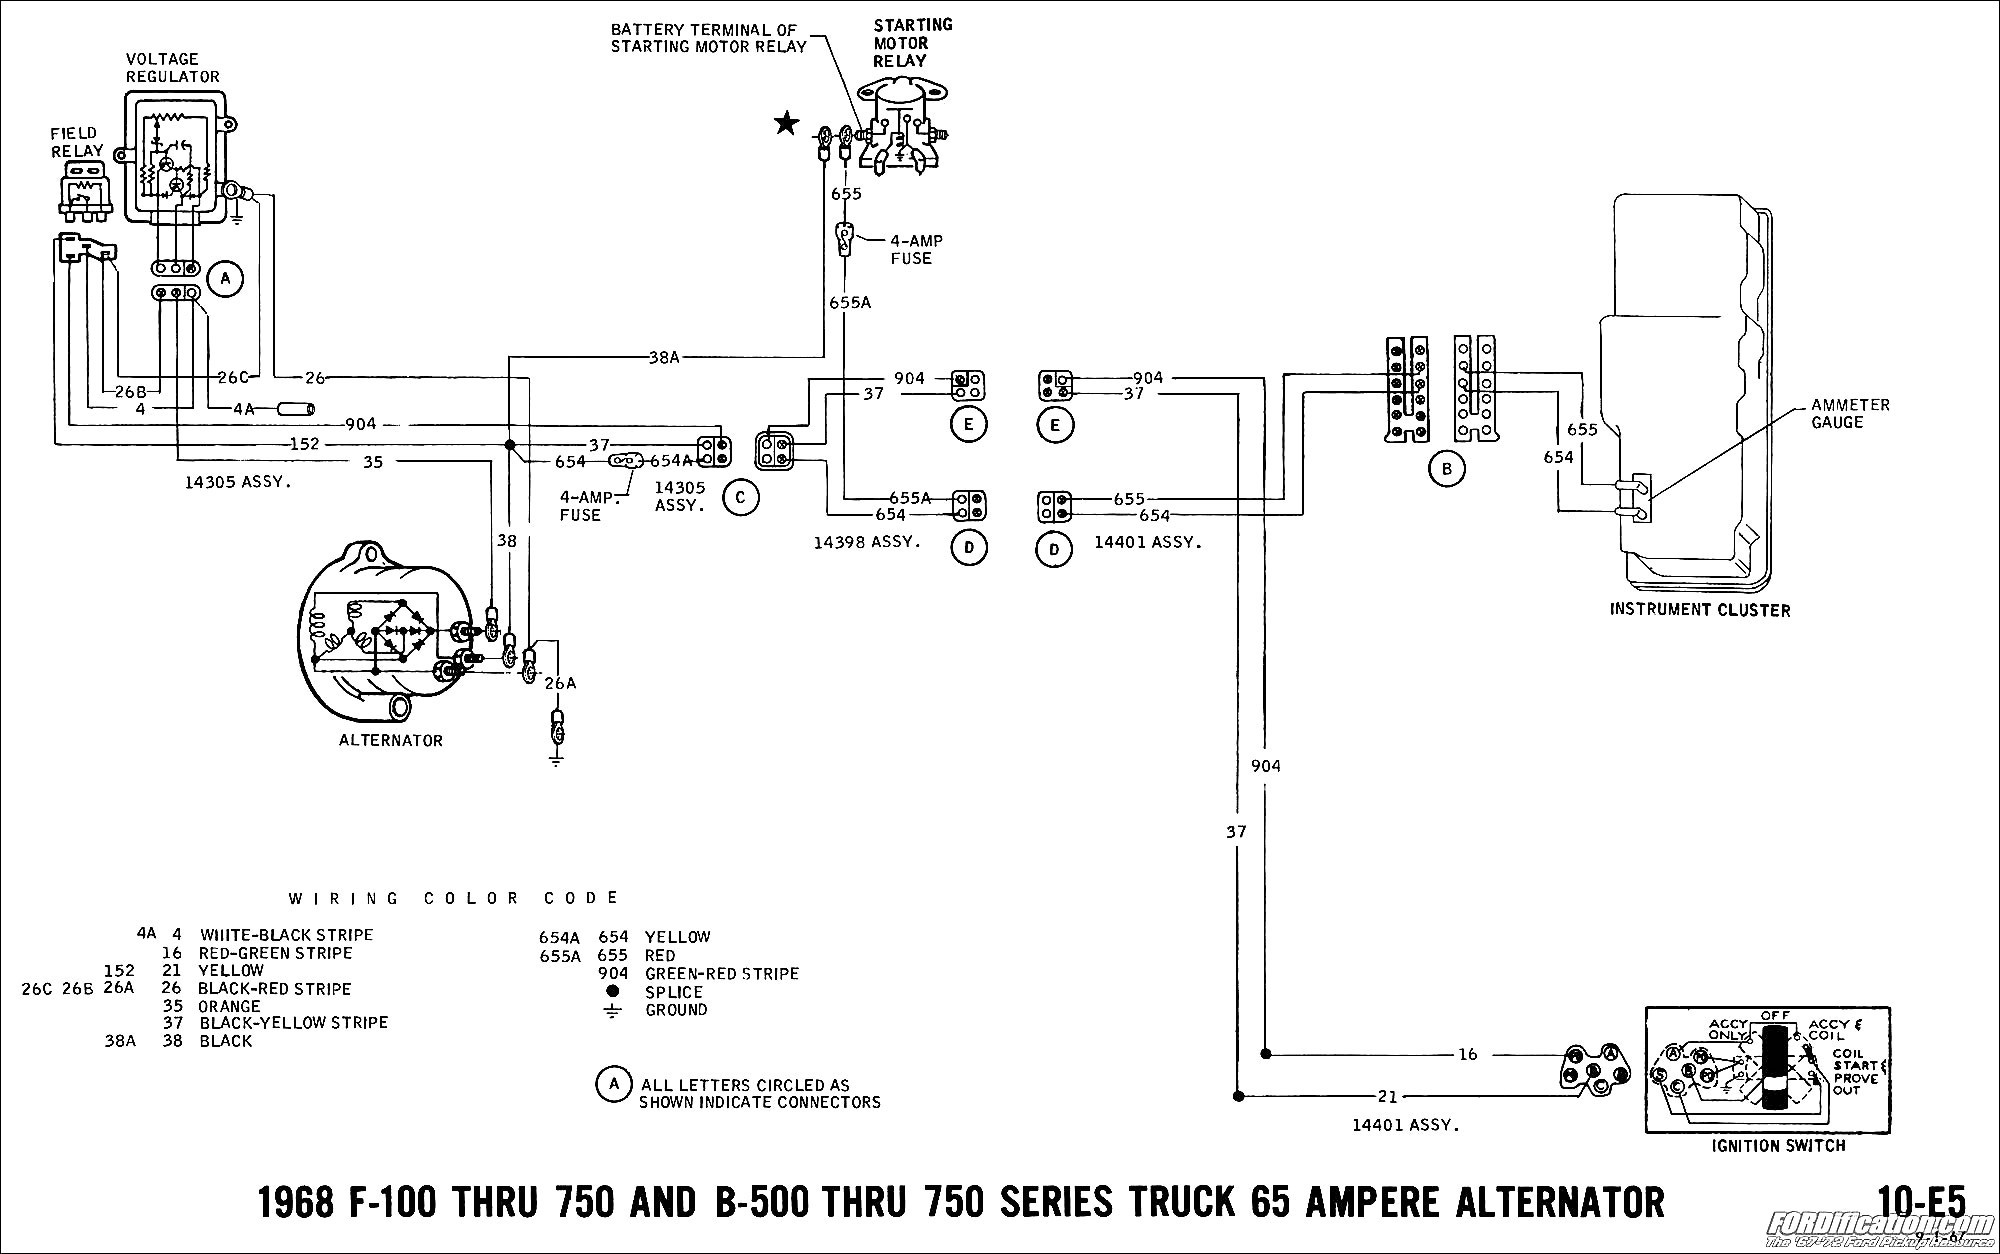 Ford 4400 Electrical Diagram Custom Wiring 2002 Ranger Schematic Data Diagrams 4630 Tractor Fuse Box Explore U2022 Rh Webwiringdiagram Today 1989